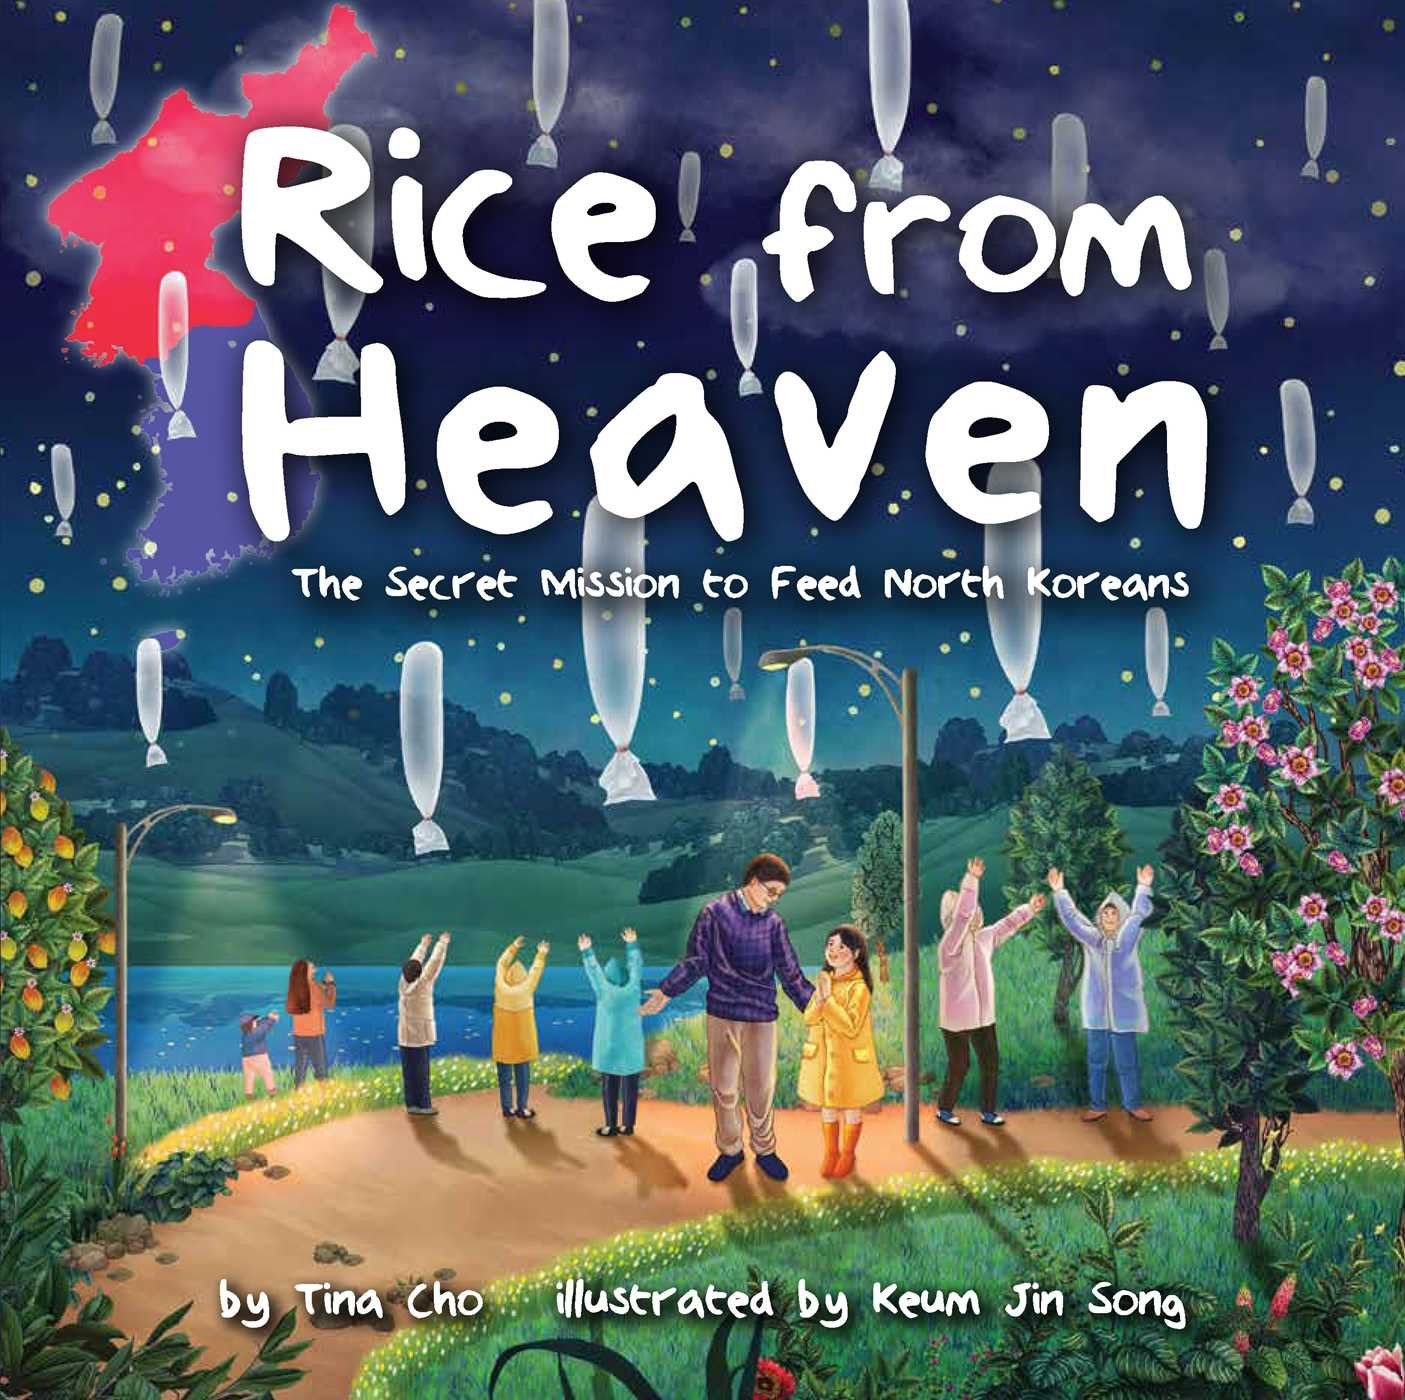 Rice from Heaven: The Secret Mission to Feed North Koreans: Cho, Tina, Jin  Song, Keum: 9781499806823: Amazon.com: Books